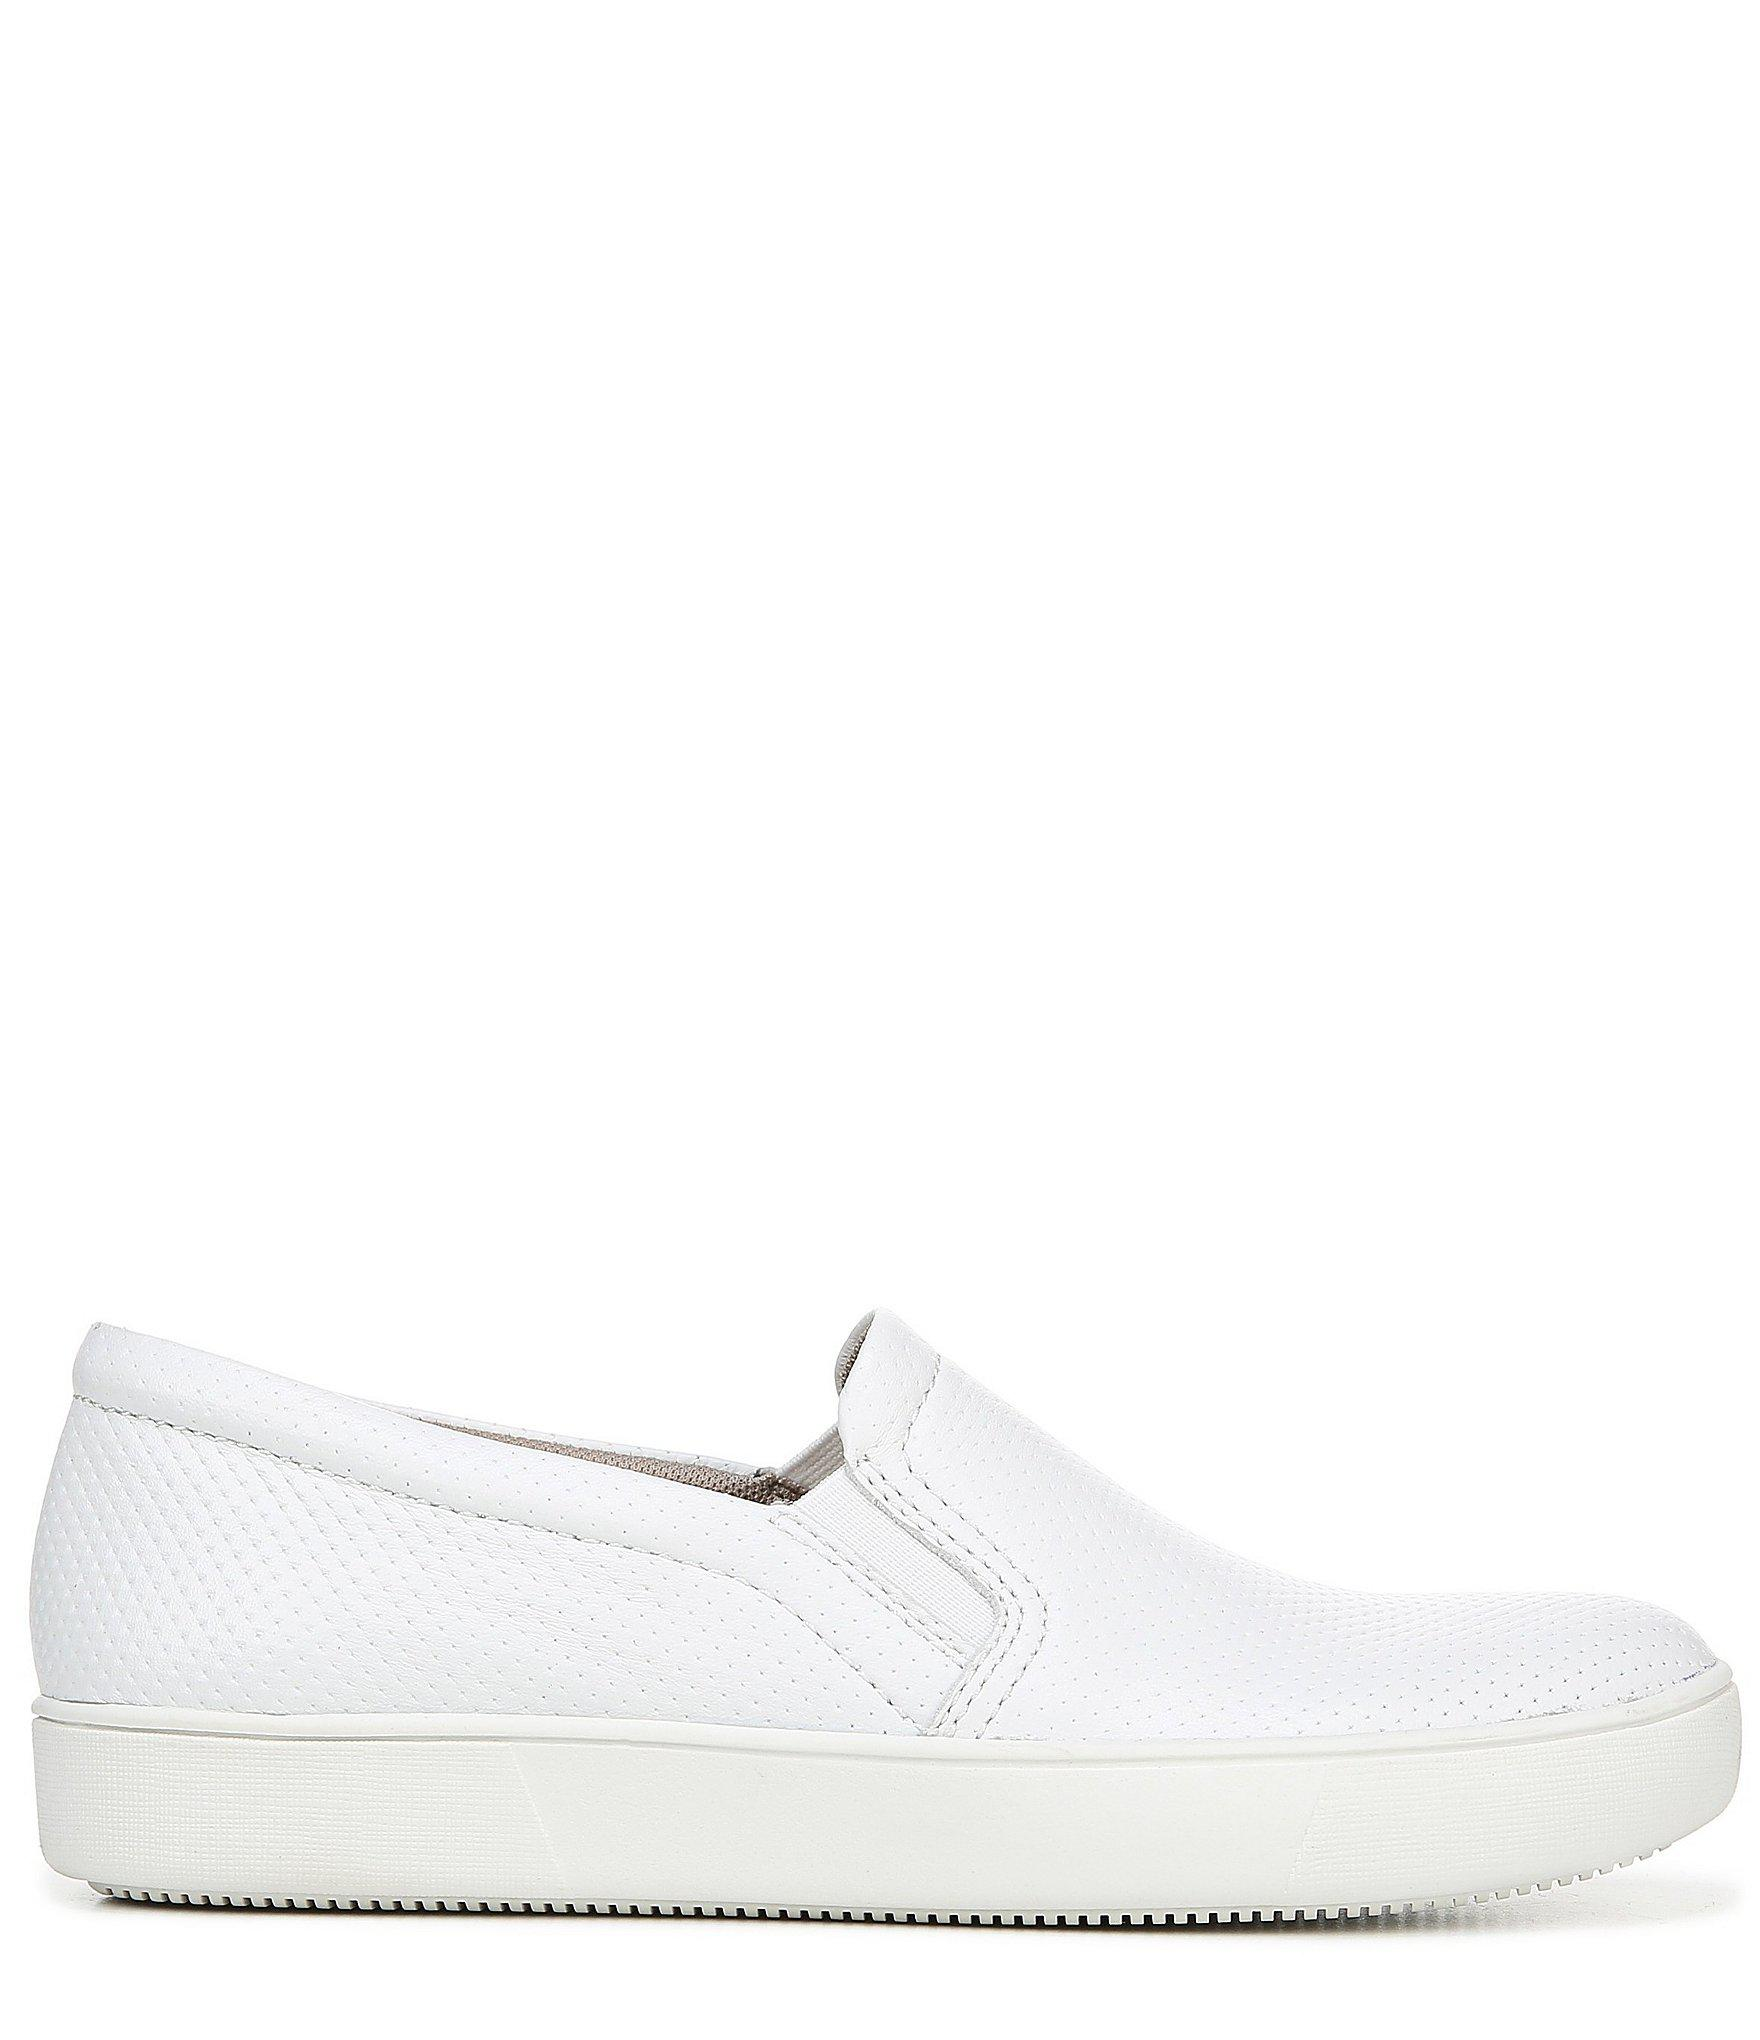 02022c28725 Lyst - Naturalizer Marianne Sneakers in White - Save 12.658227848101262%